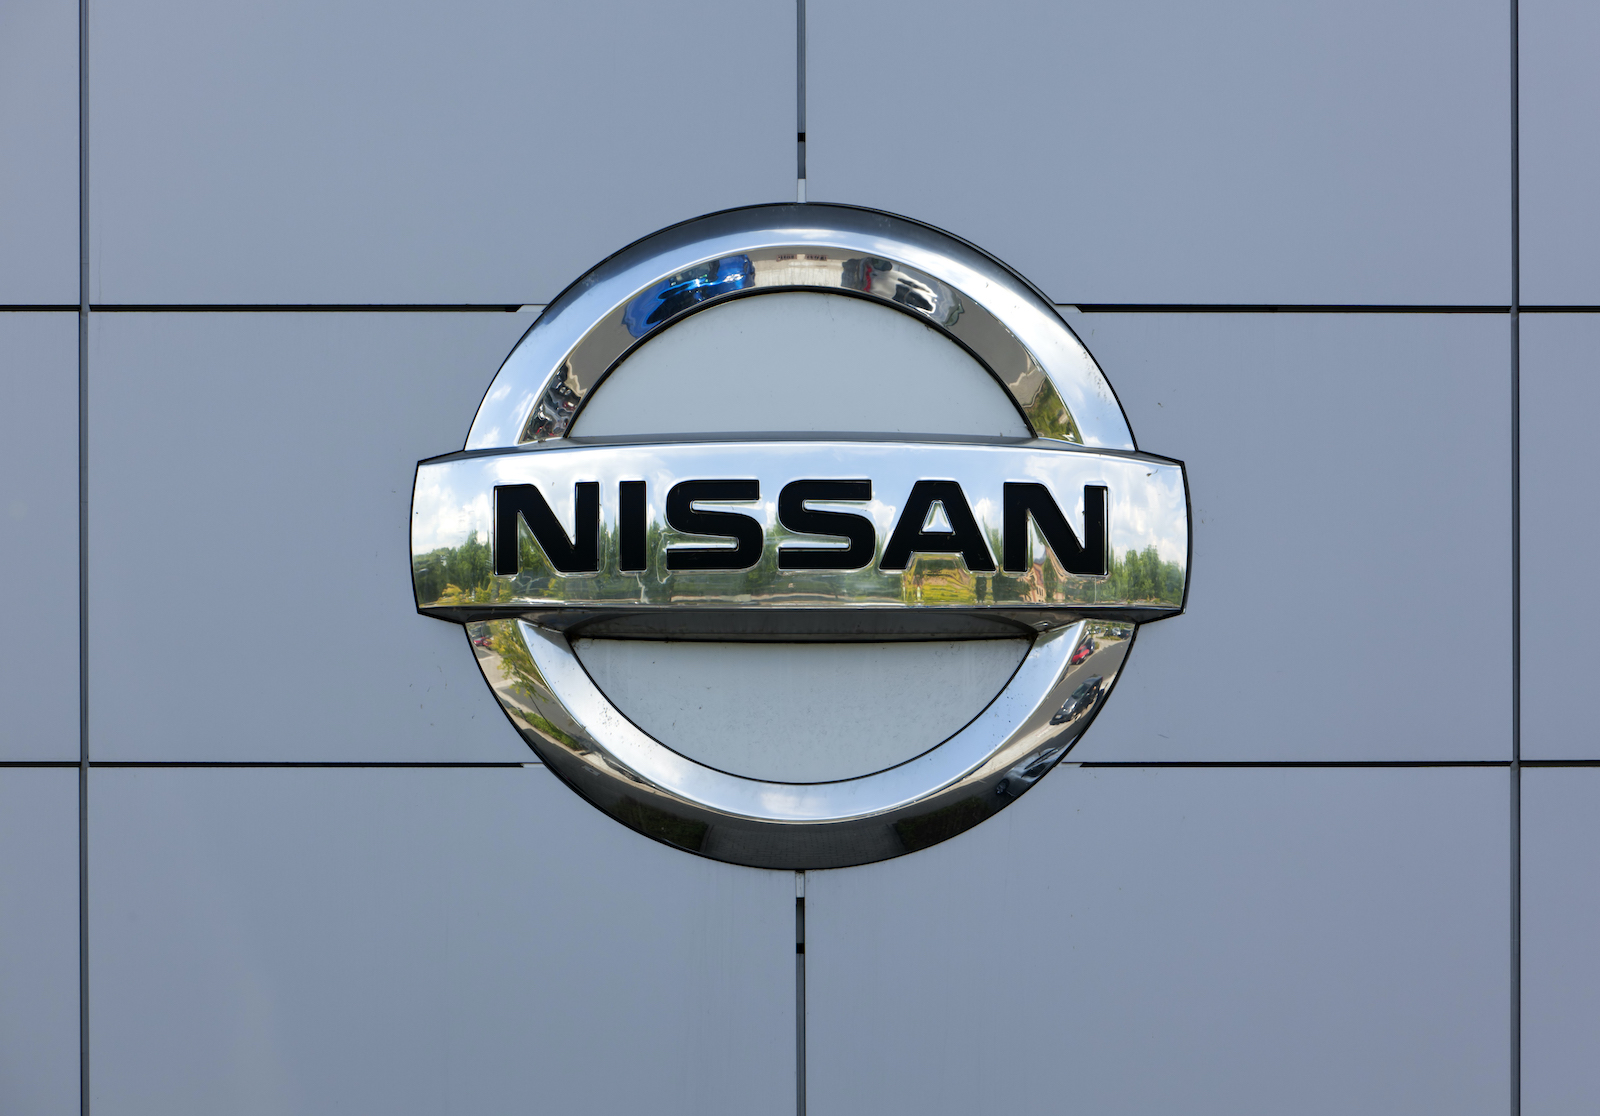 Dusseldorf, Germany - June 12, 2011: Nissan logo at the wall of car dealer's building. Nissan Motor Company Ltd is a mulrinational car manufacturer headquartered in Yokohama, Japan.